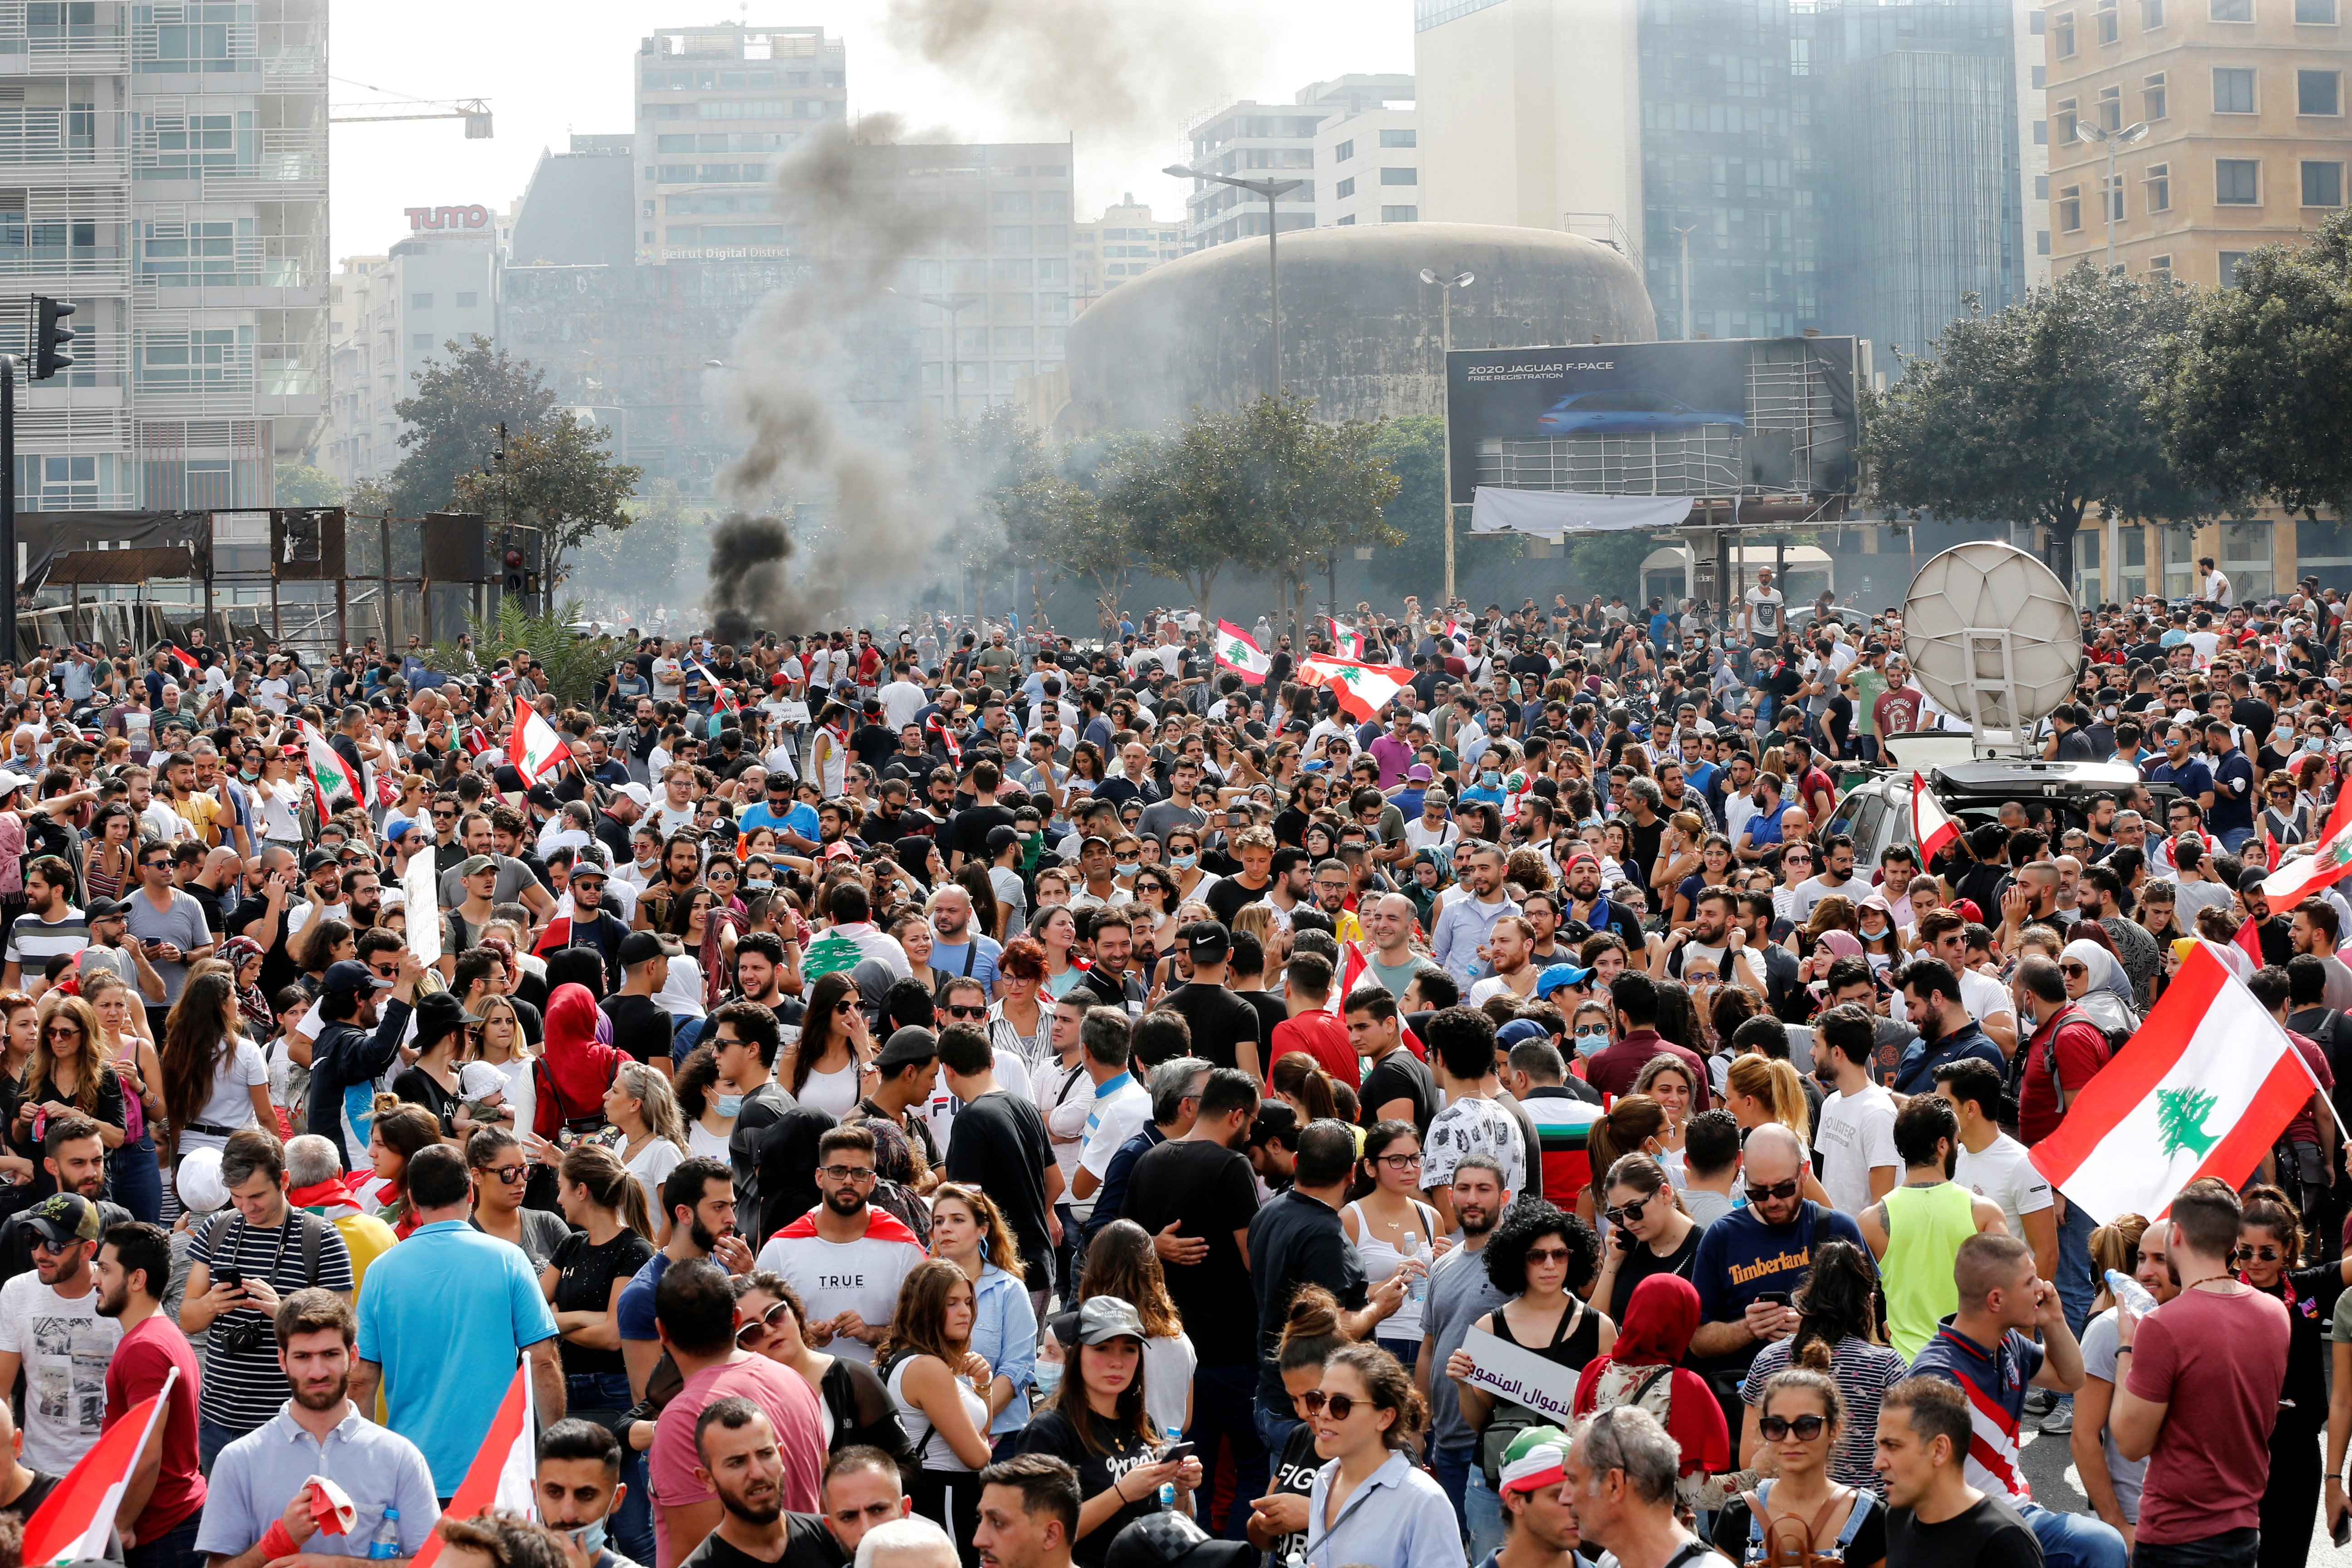 Smoke rises as demonstrators gather during a protest in Beirut over deteriorating economic situation on 18 October (Reuters)